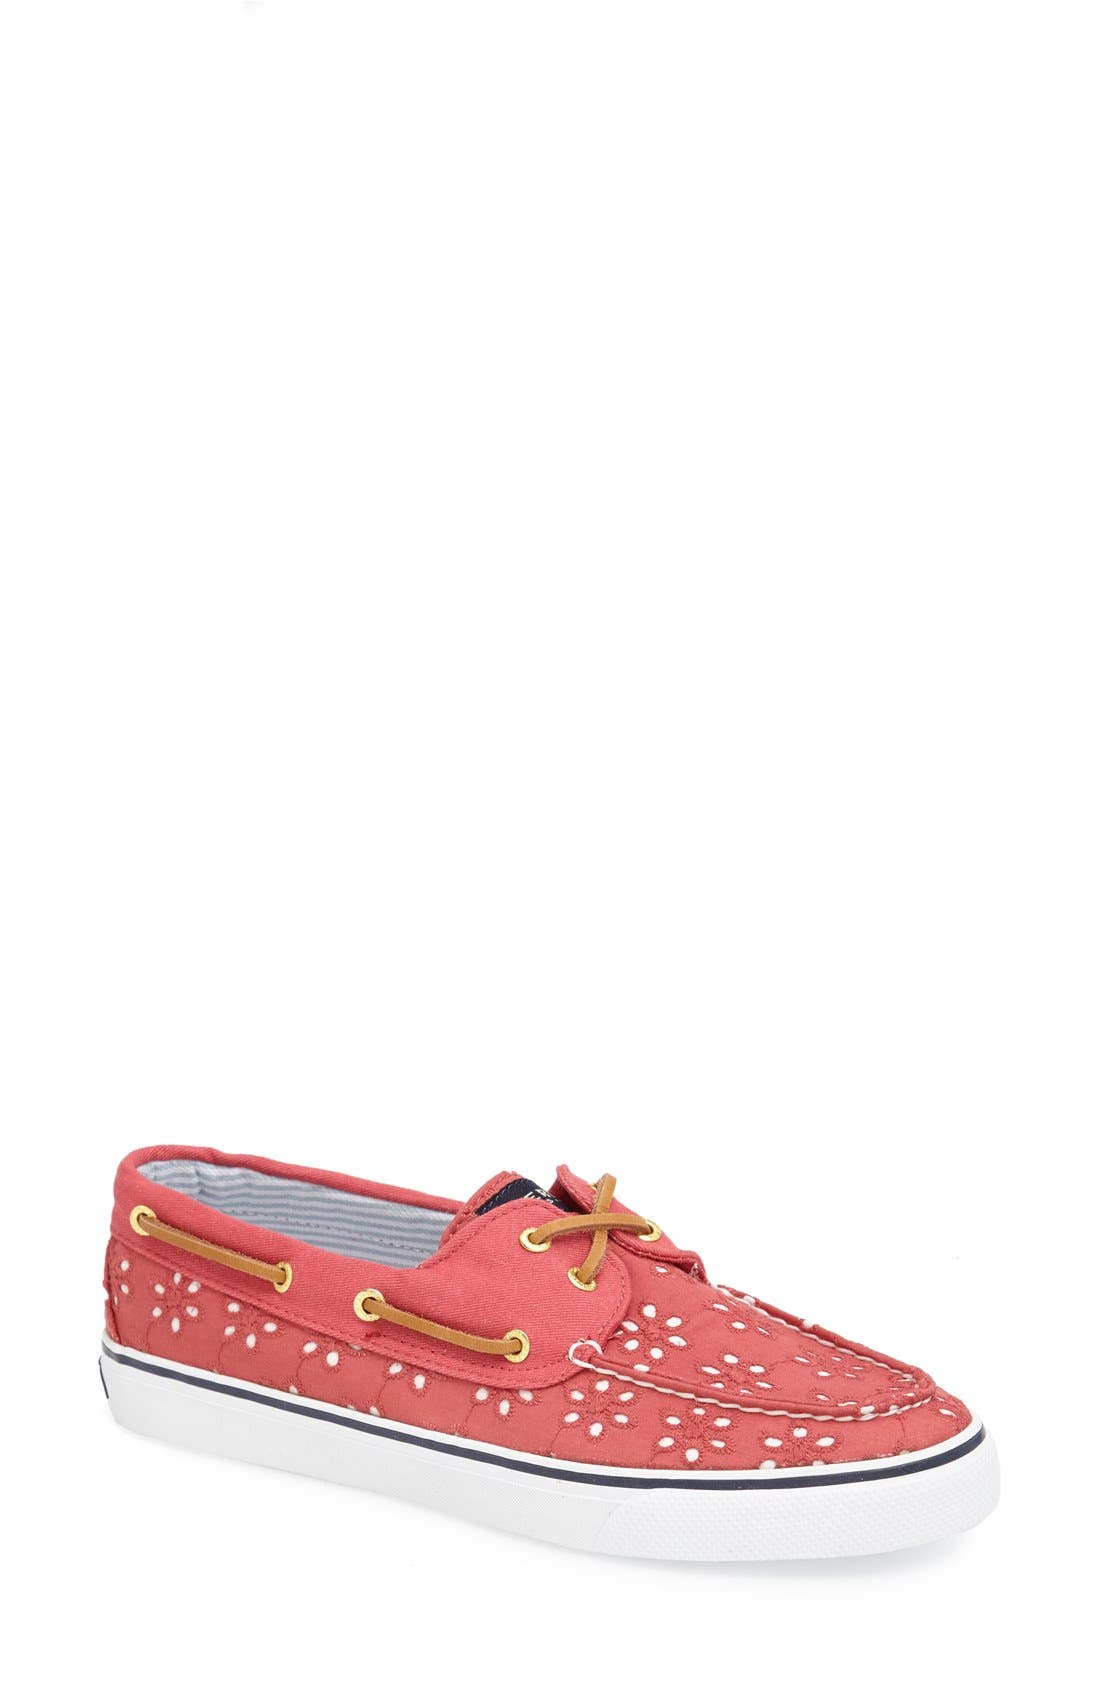 Top-Sider<sup>®</sup> 'Bahama' Sequined Boat Shoe,                             Main thumbnail 36, color,